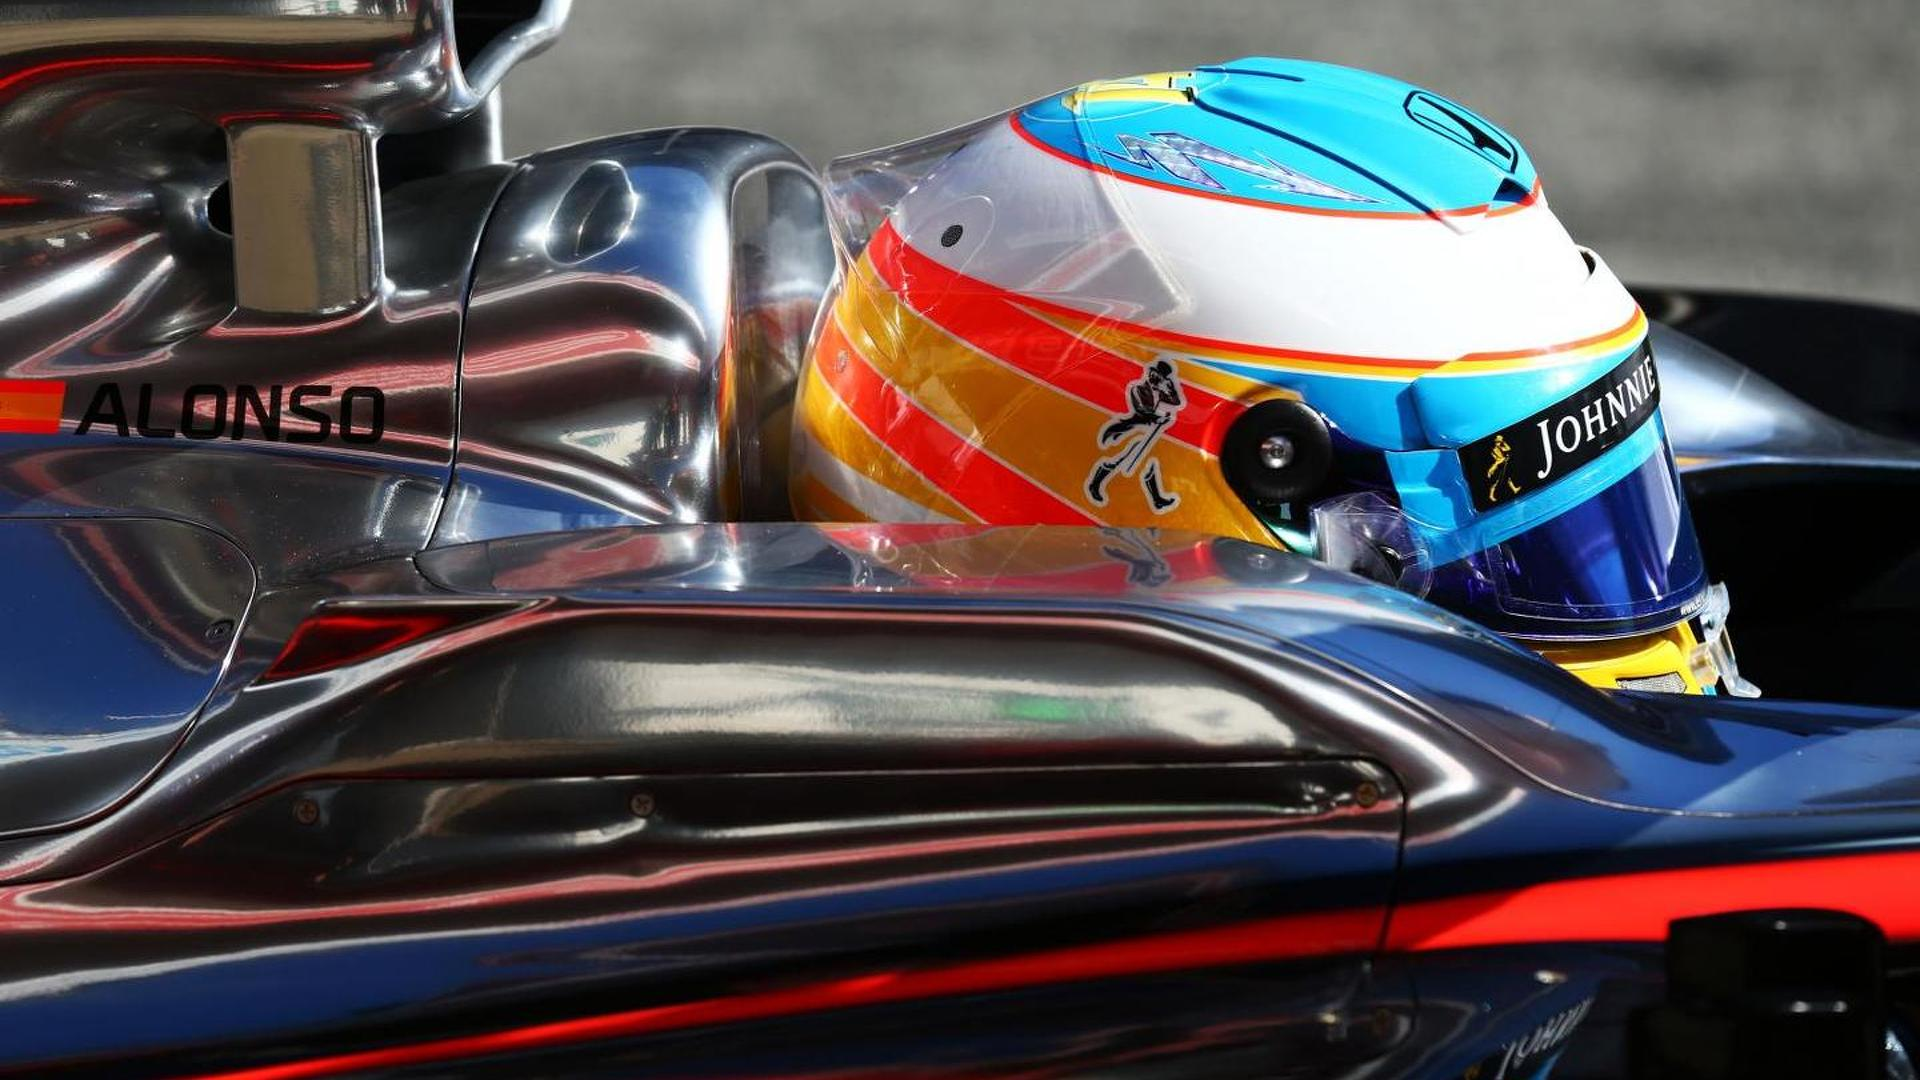 Alonso declares 'locked steering' caused crash, no loss of memory